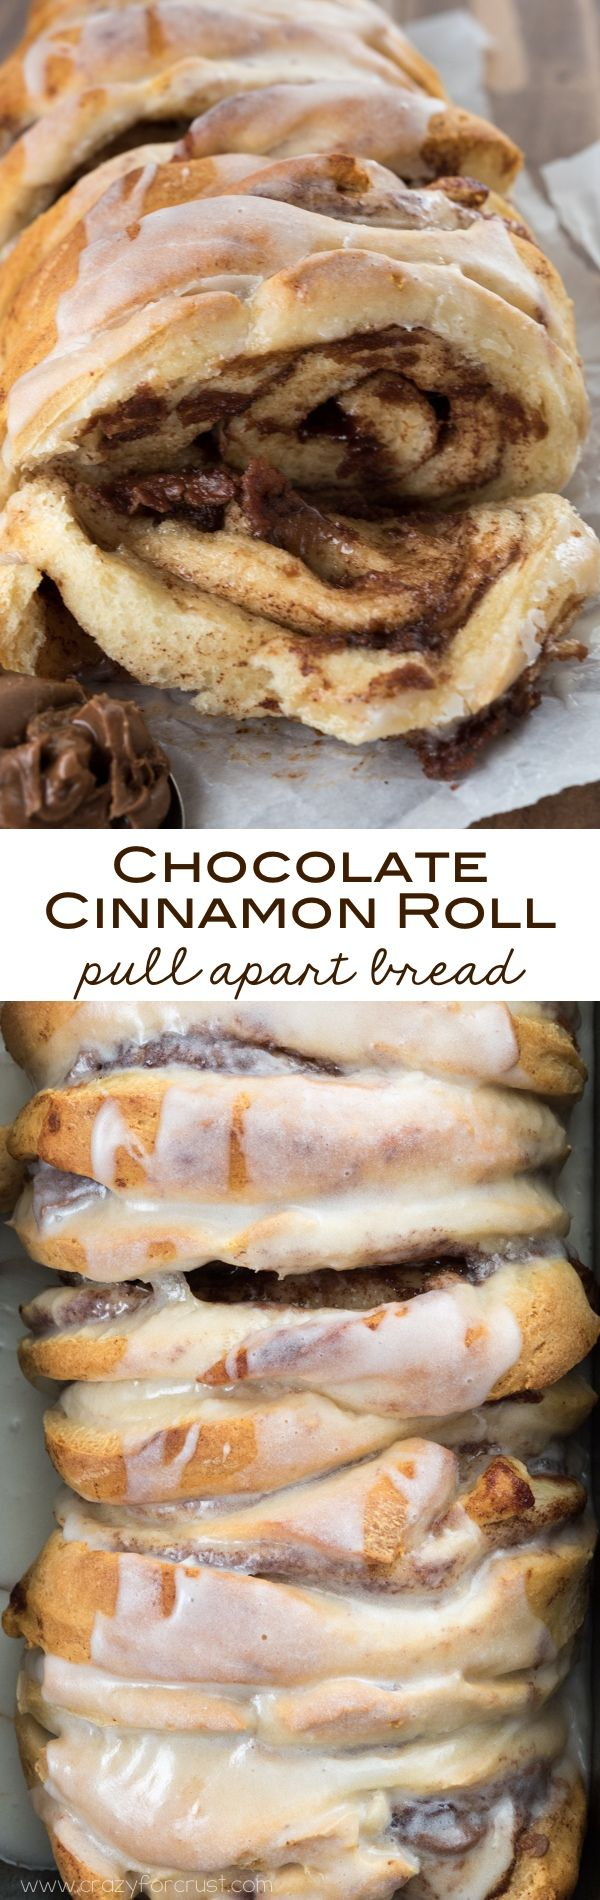 Chocolate Cinnamon Roll Pull Apart Bread | Crazy For Crust | only 2 ingredients! An easy breakfast recipe on the table in under 30 minutes.